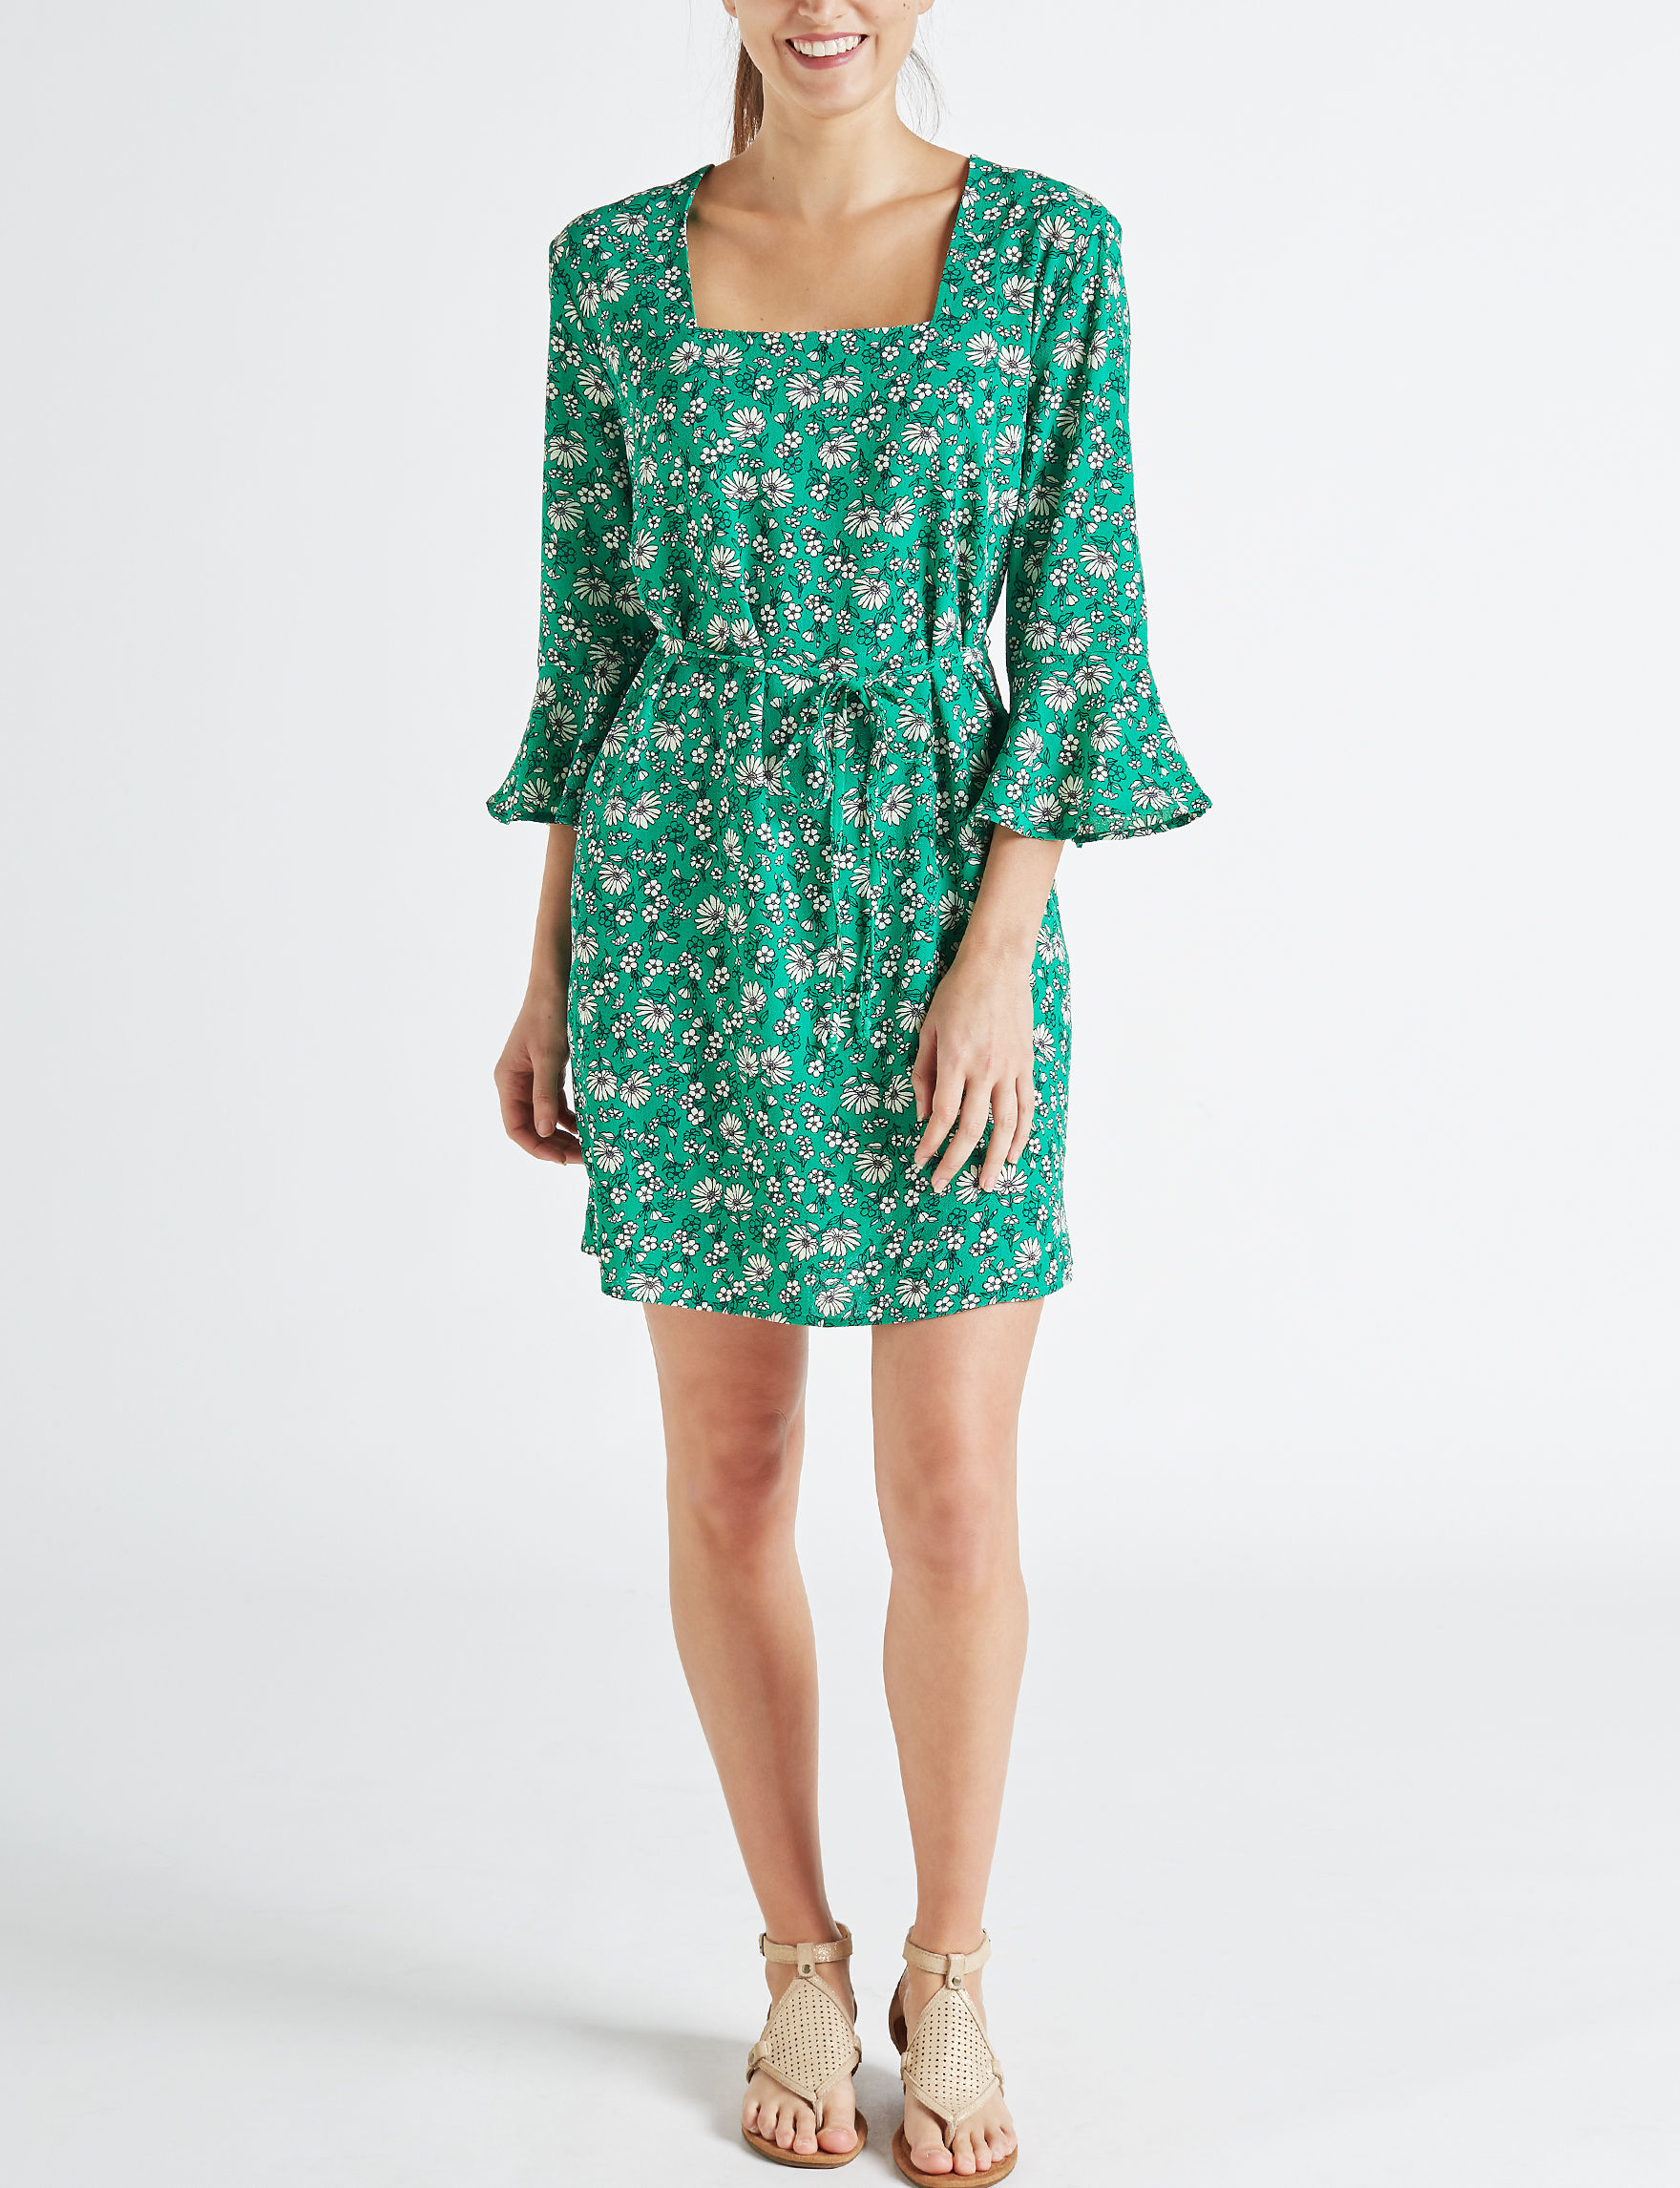 Wishful Park Green Everyday & Casual Shirt Dresses